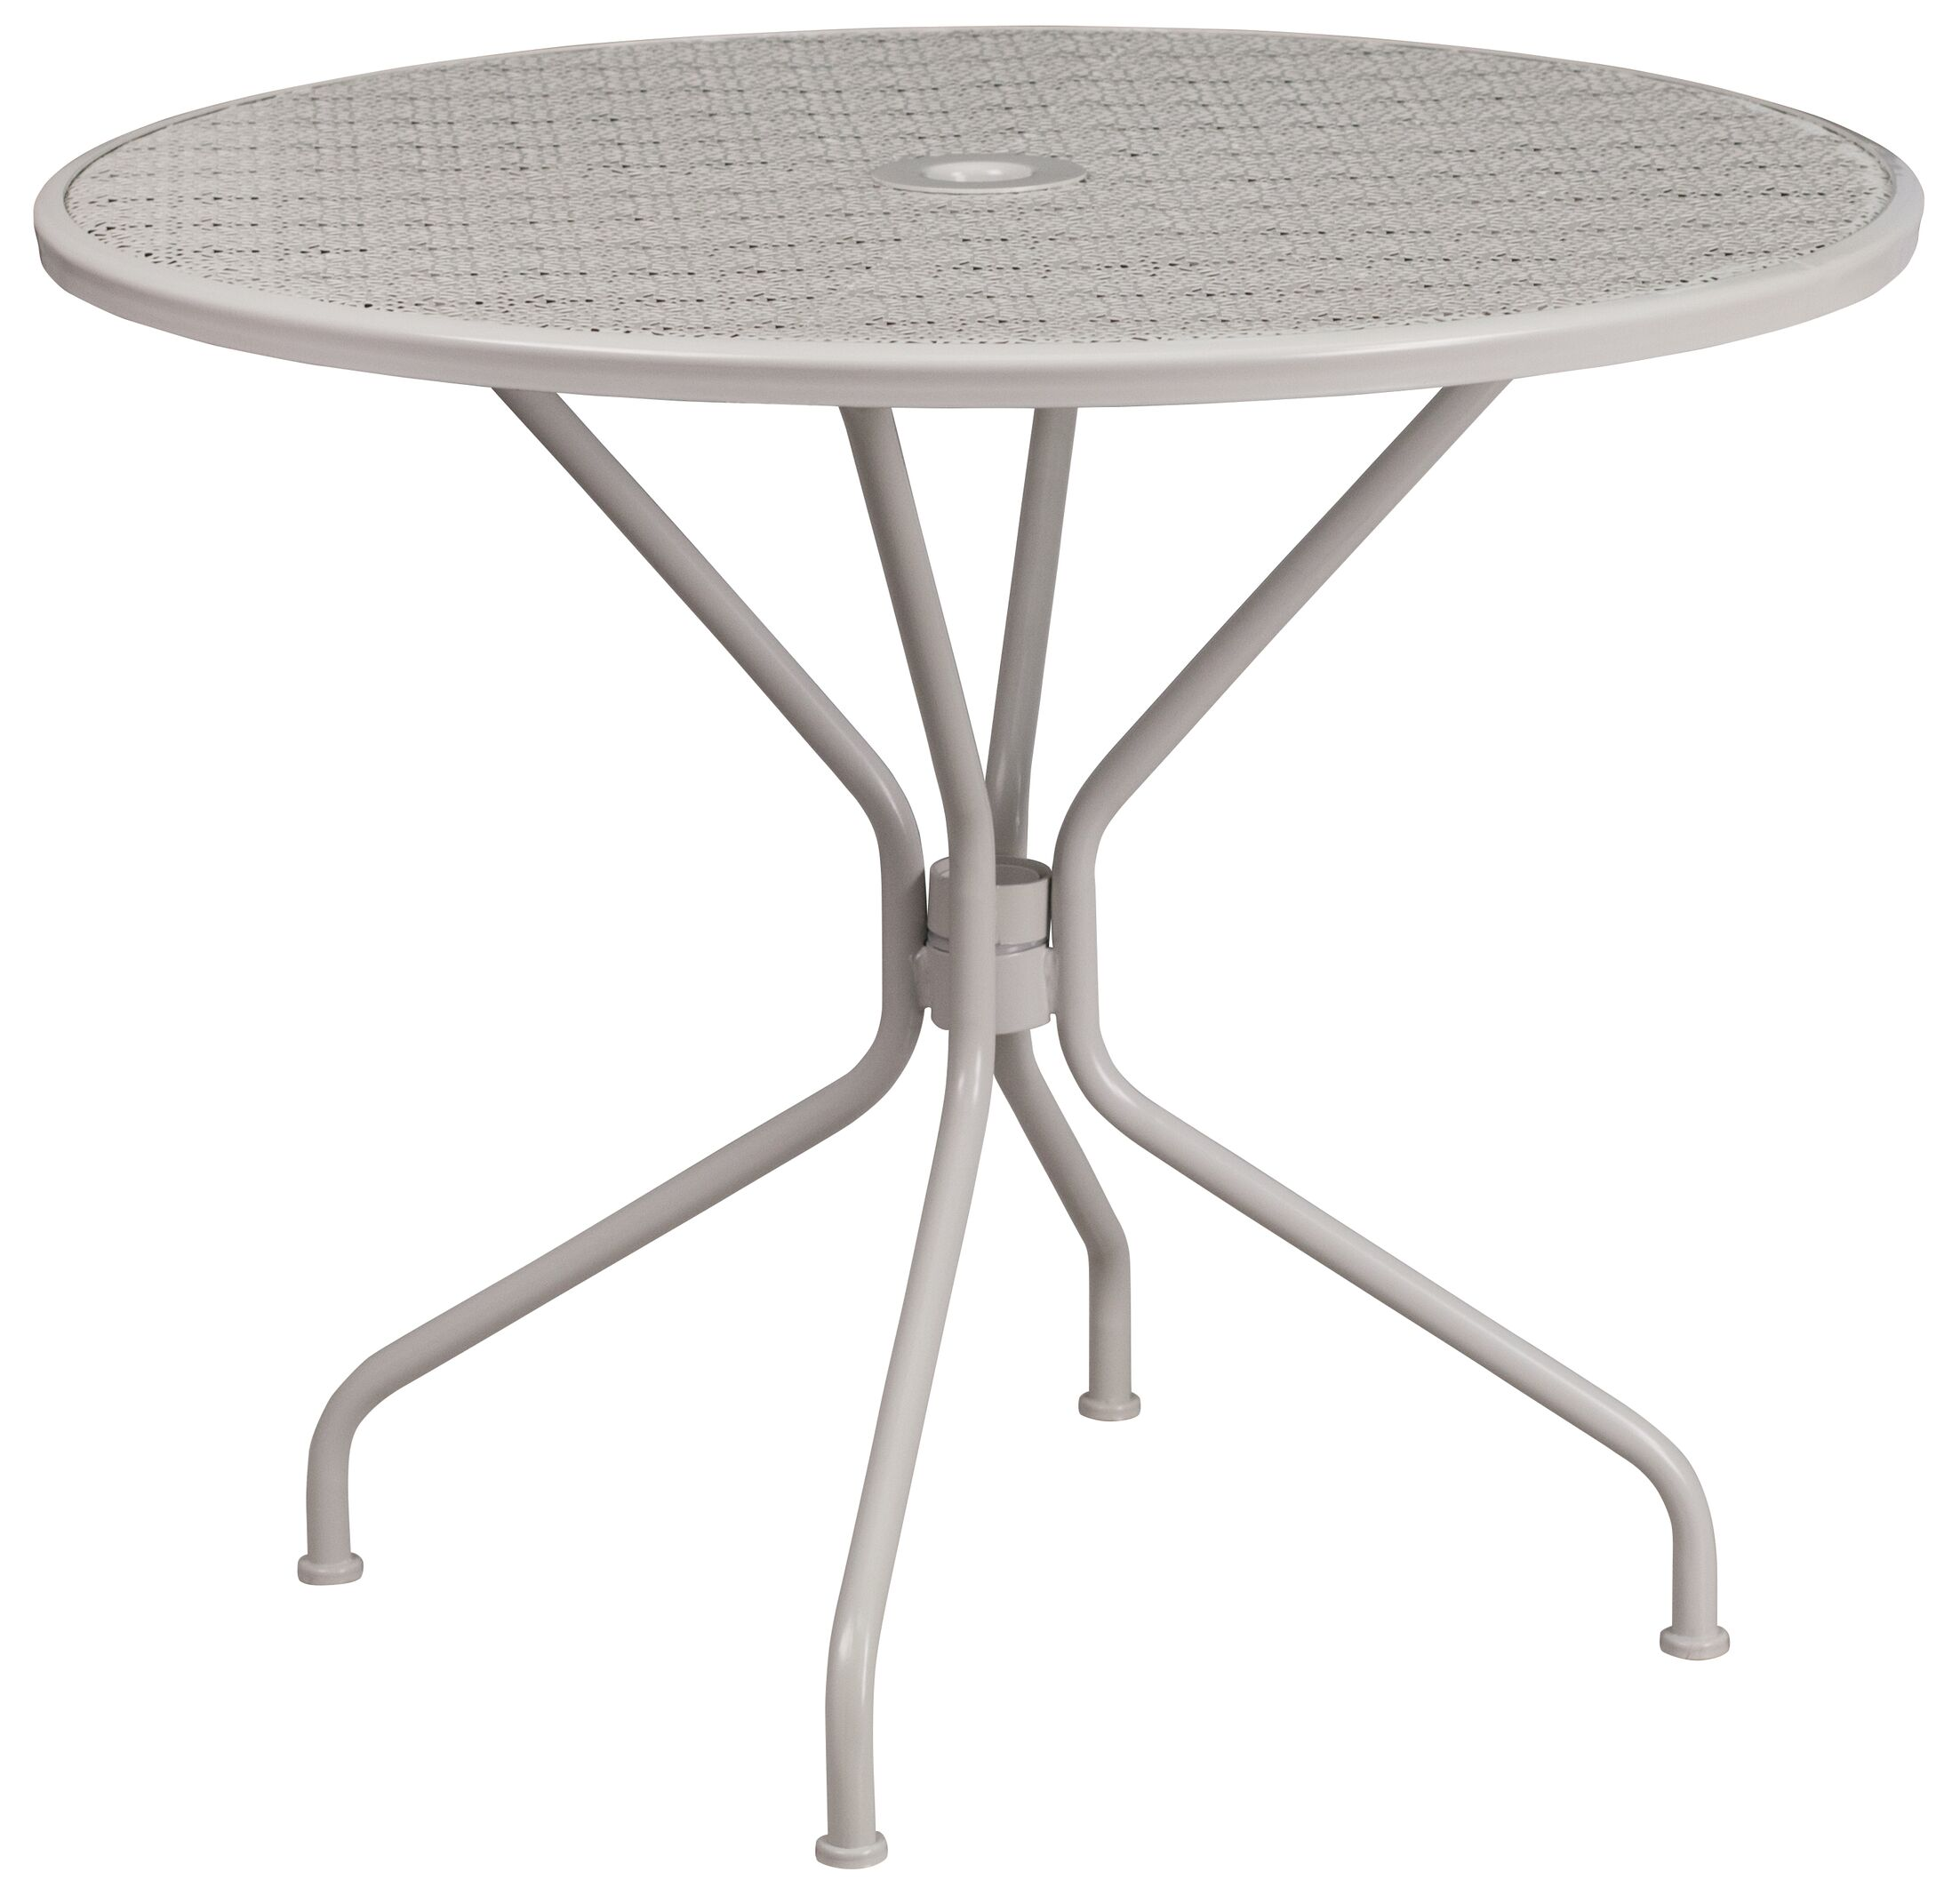 Vivanco Dining Table Finish: Light Gray